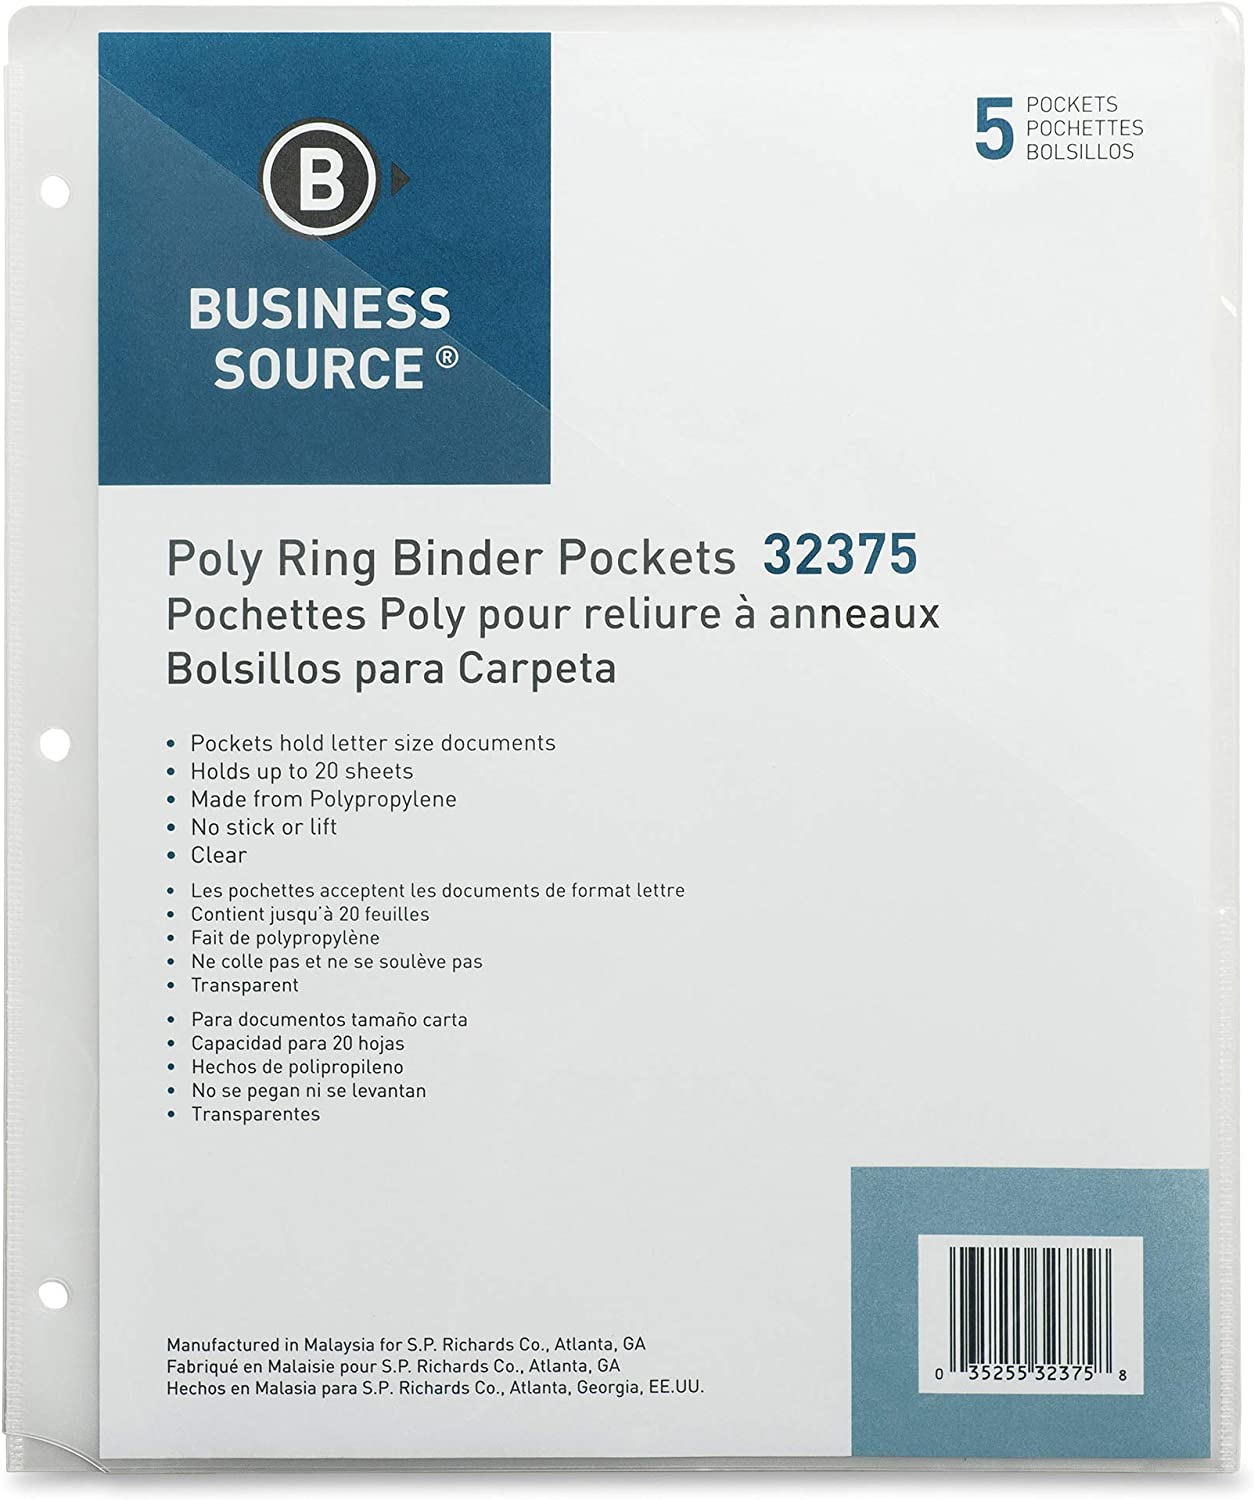 32375 Pack of 5 Clear Business Source Binder Pockets